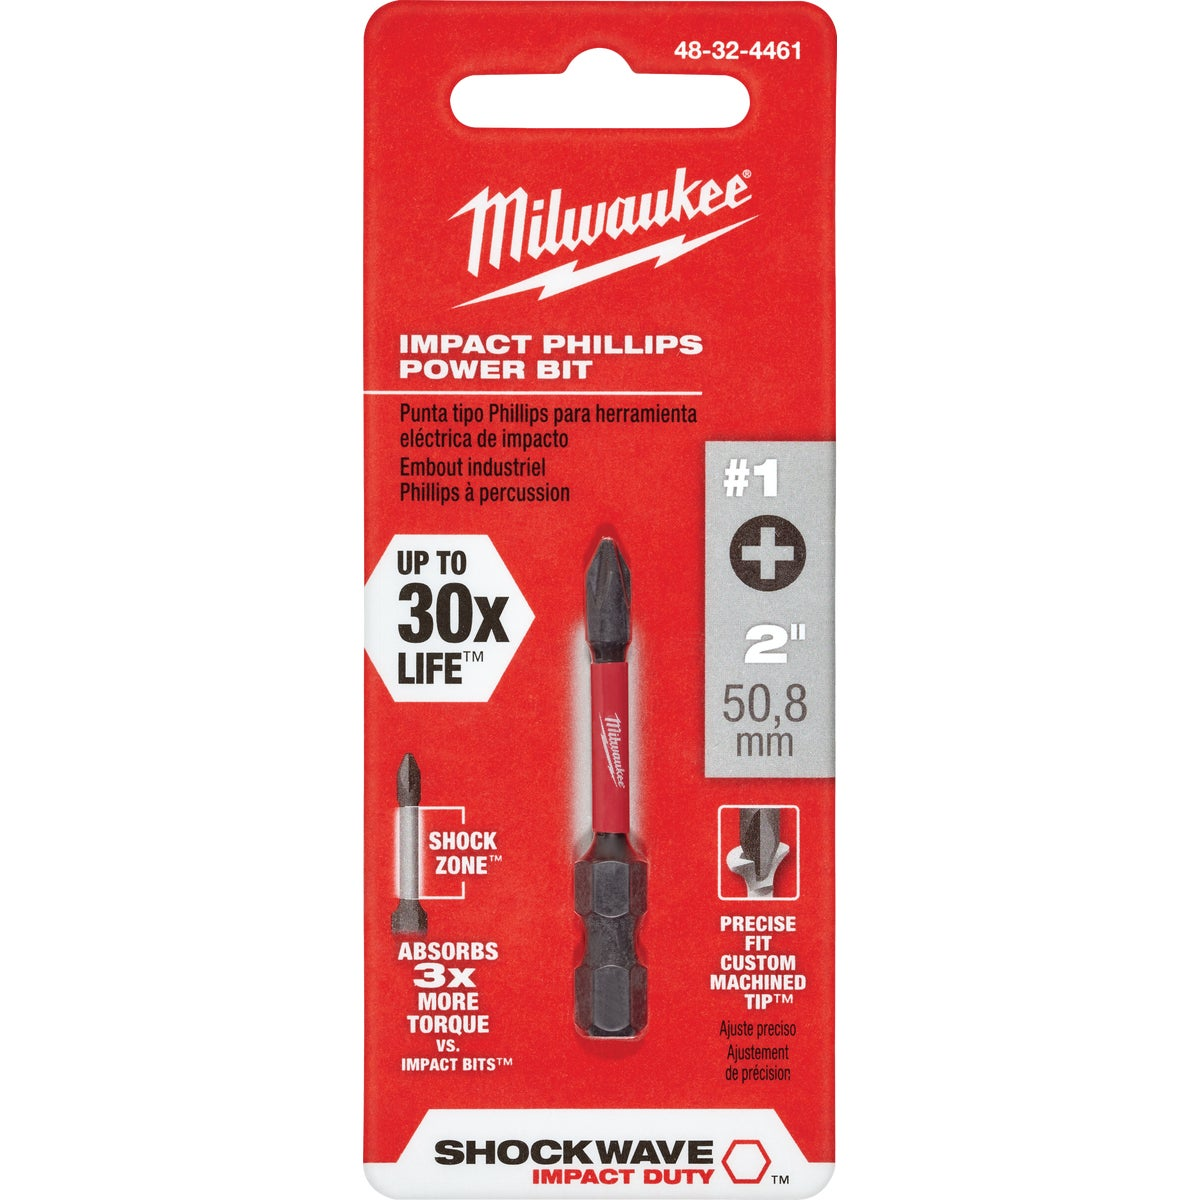 "2"" #1 PHILLIPS POWER BIT - 48-32-4461 by Milwaukee Accessory"